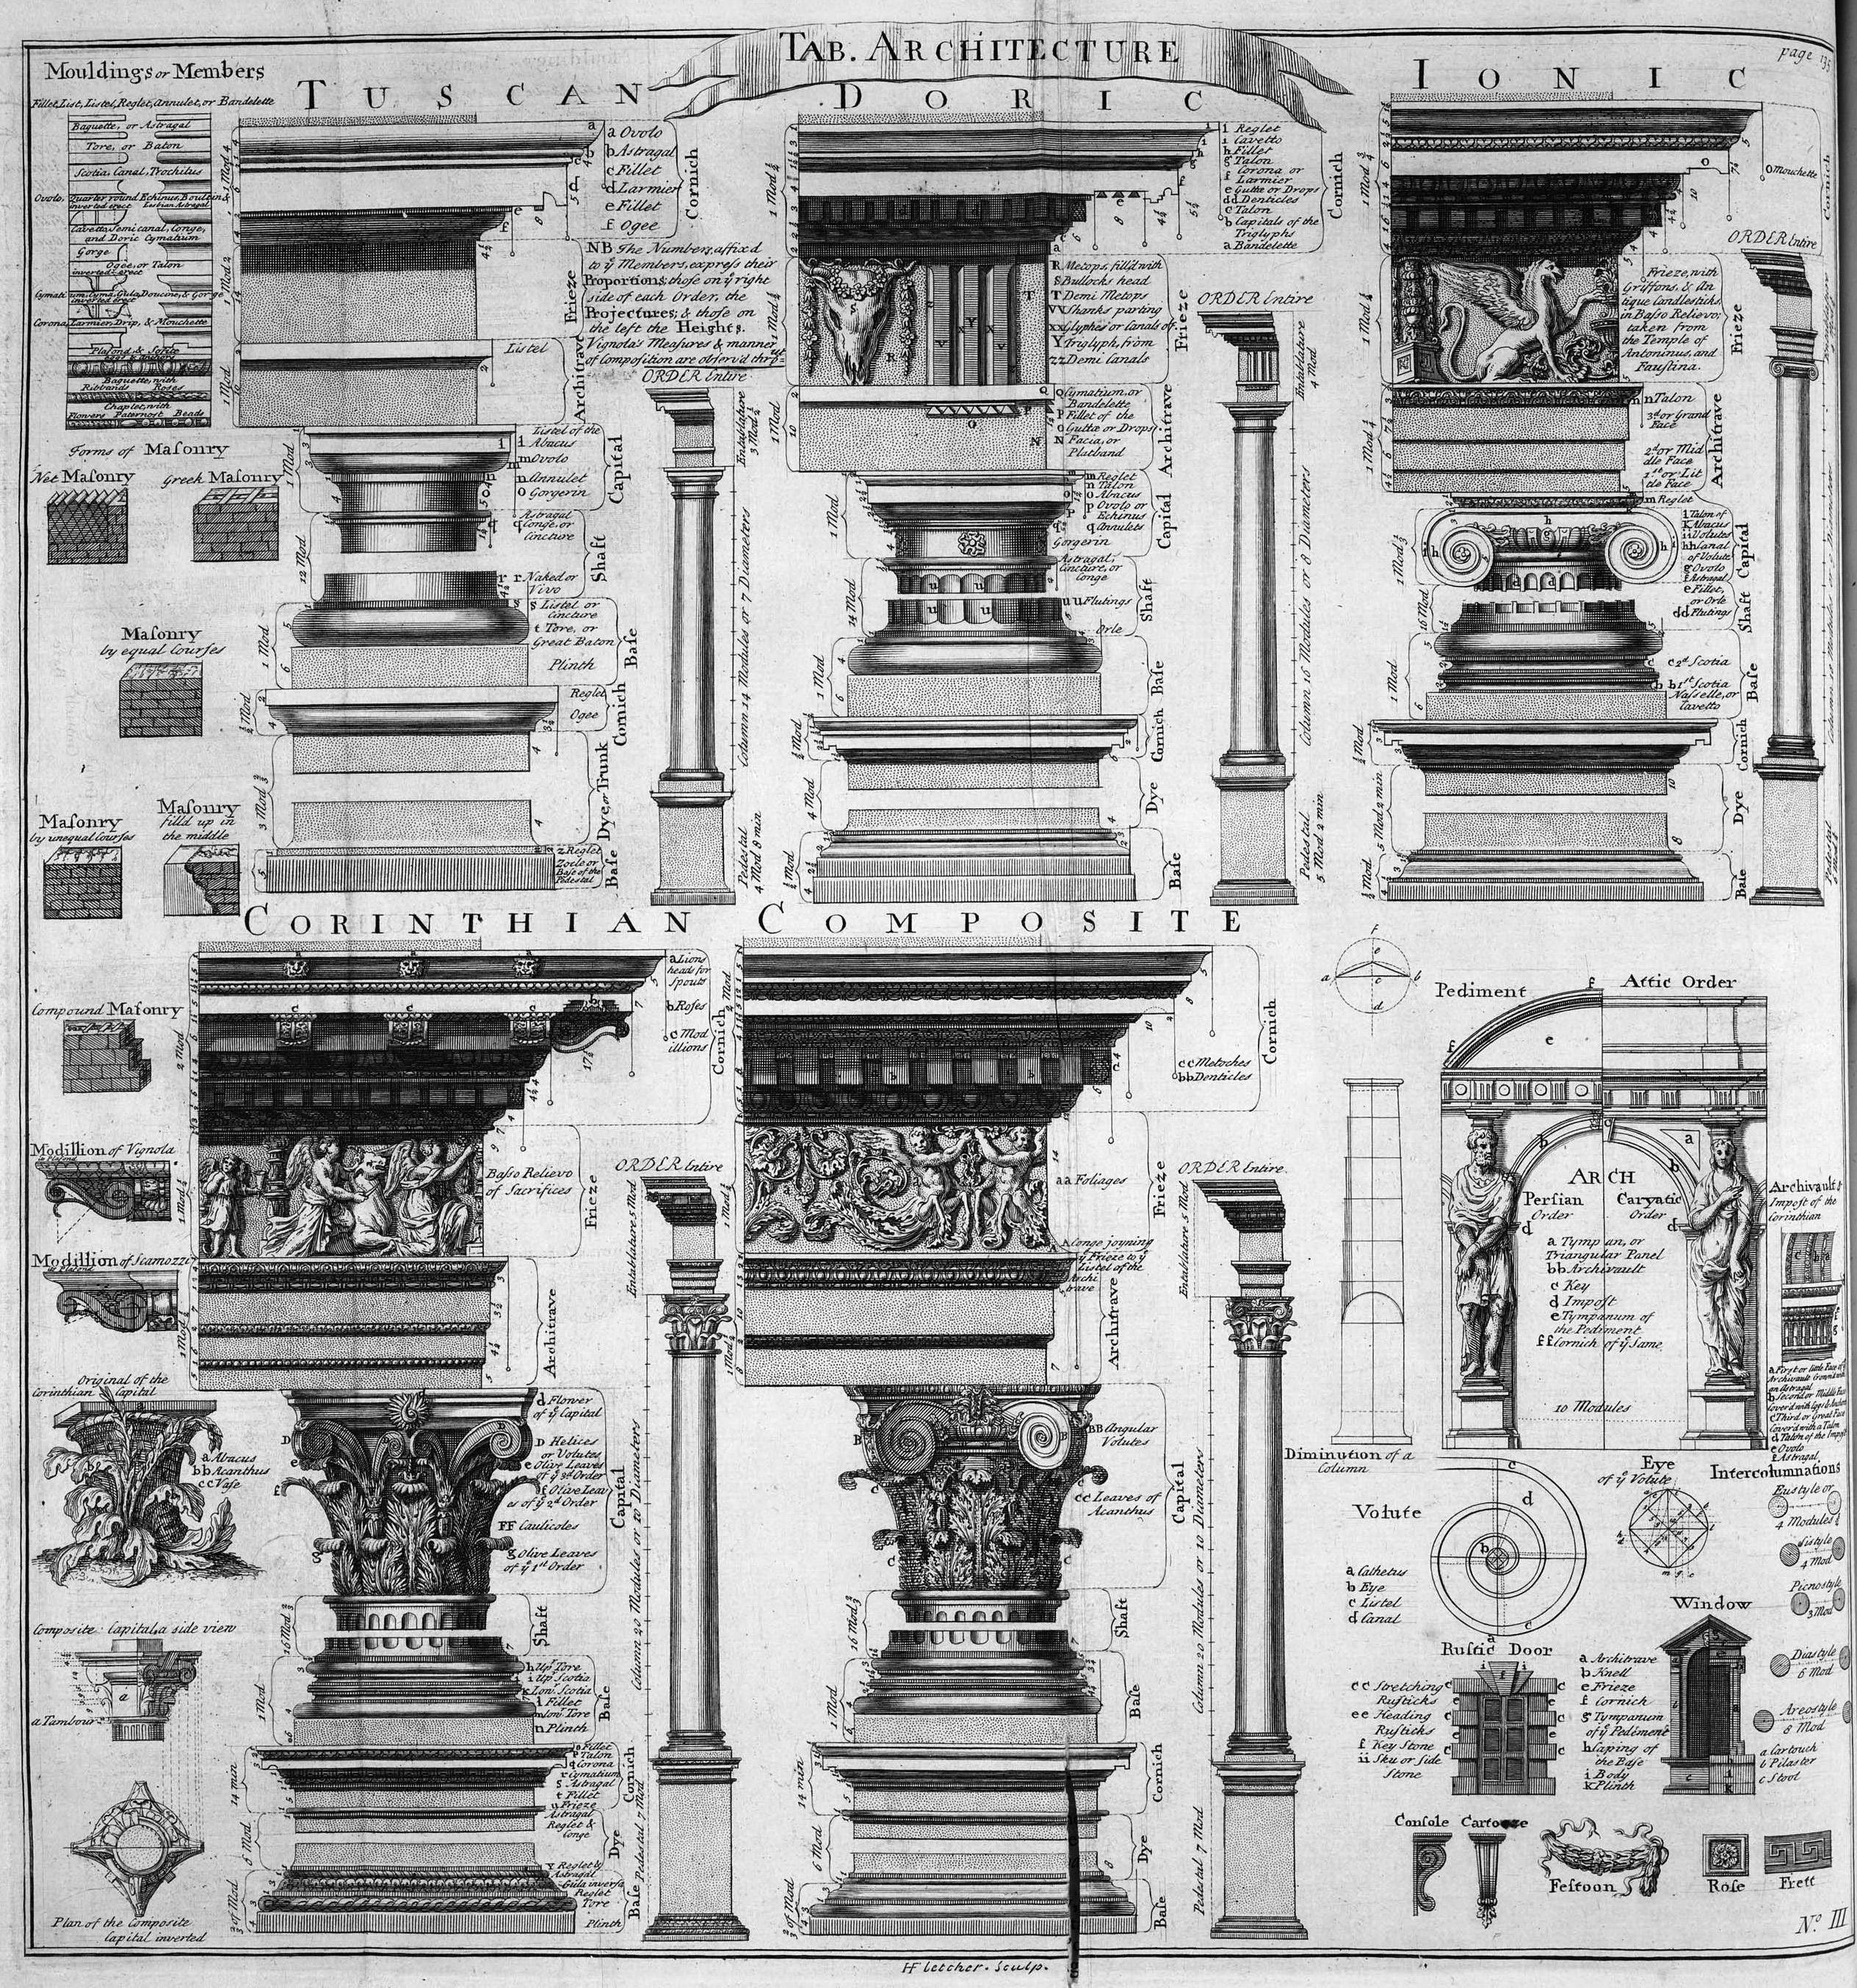 Detailed Illustrated Architectural Element Glossary